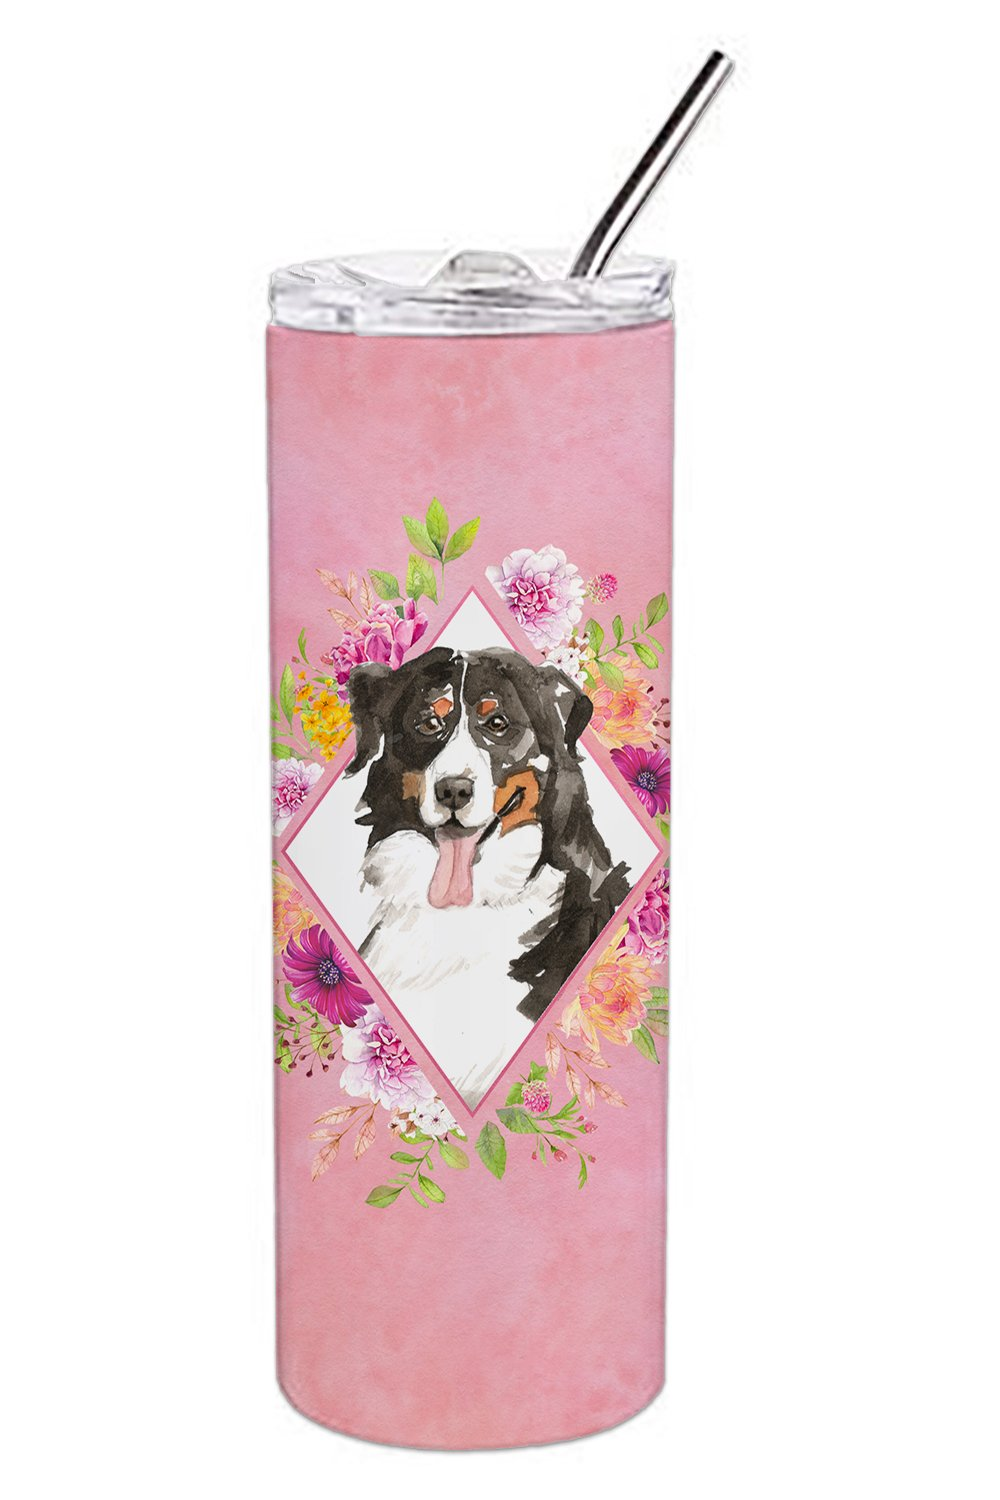 Bernese Mountain Dog Pink Flowers Double Walled Stainless Steel 20 oz Skinny Tumbler CK4264TBL20 by Caroline's Treasures